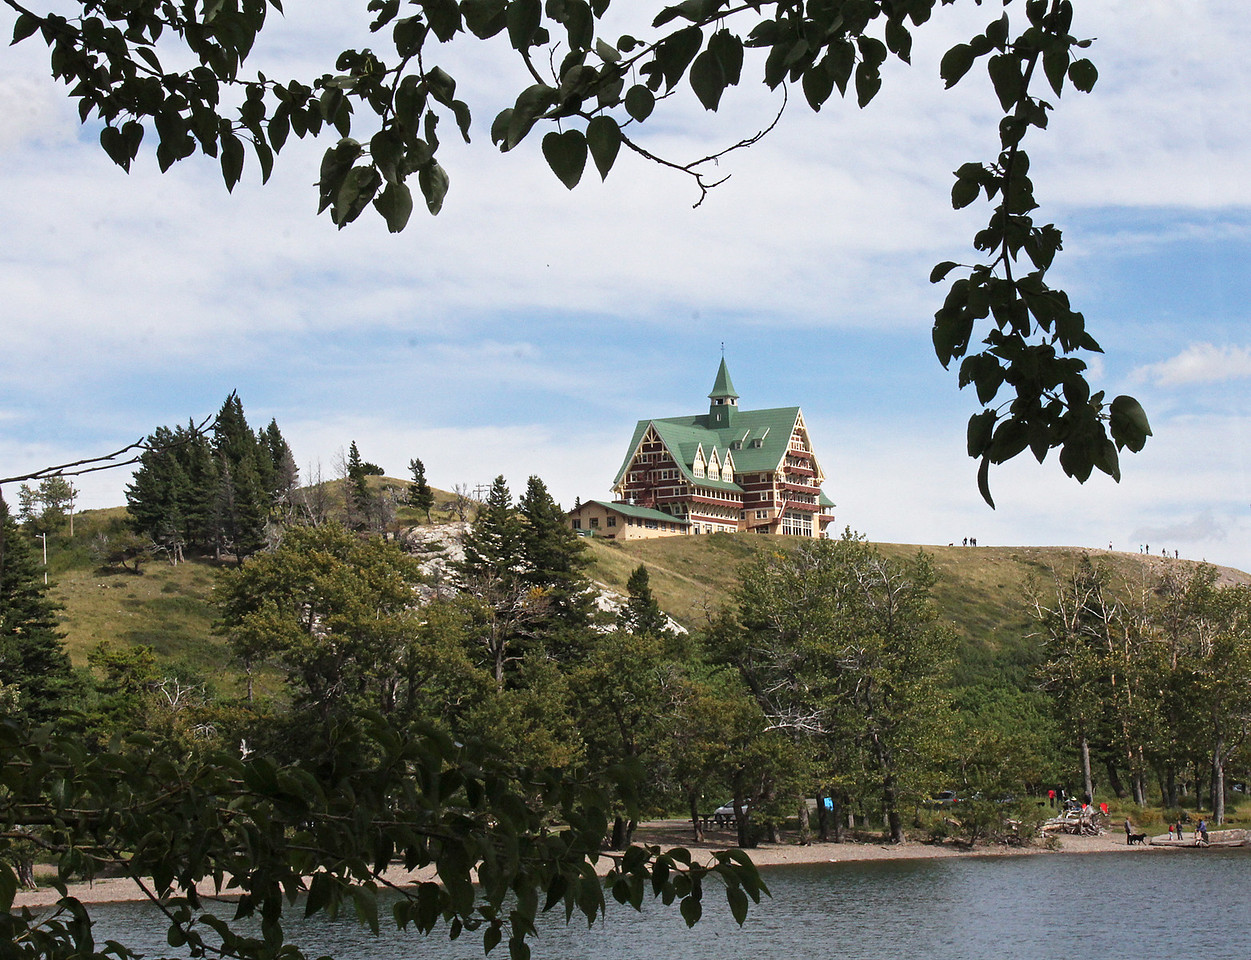 The Prince of Wales Hotel sits on top of a bluff at the north end of the lake.